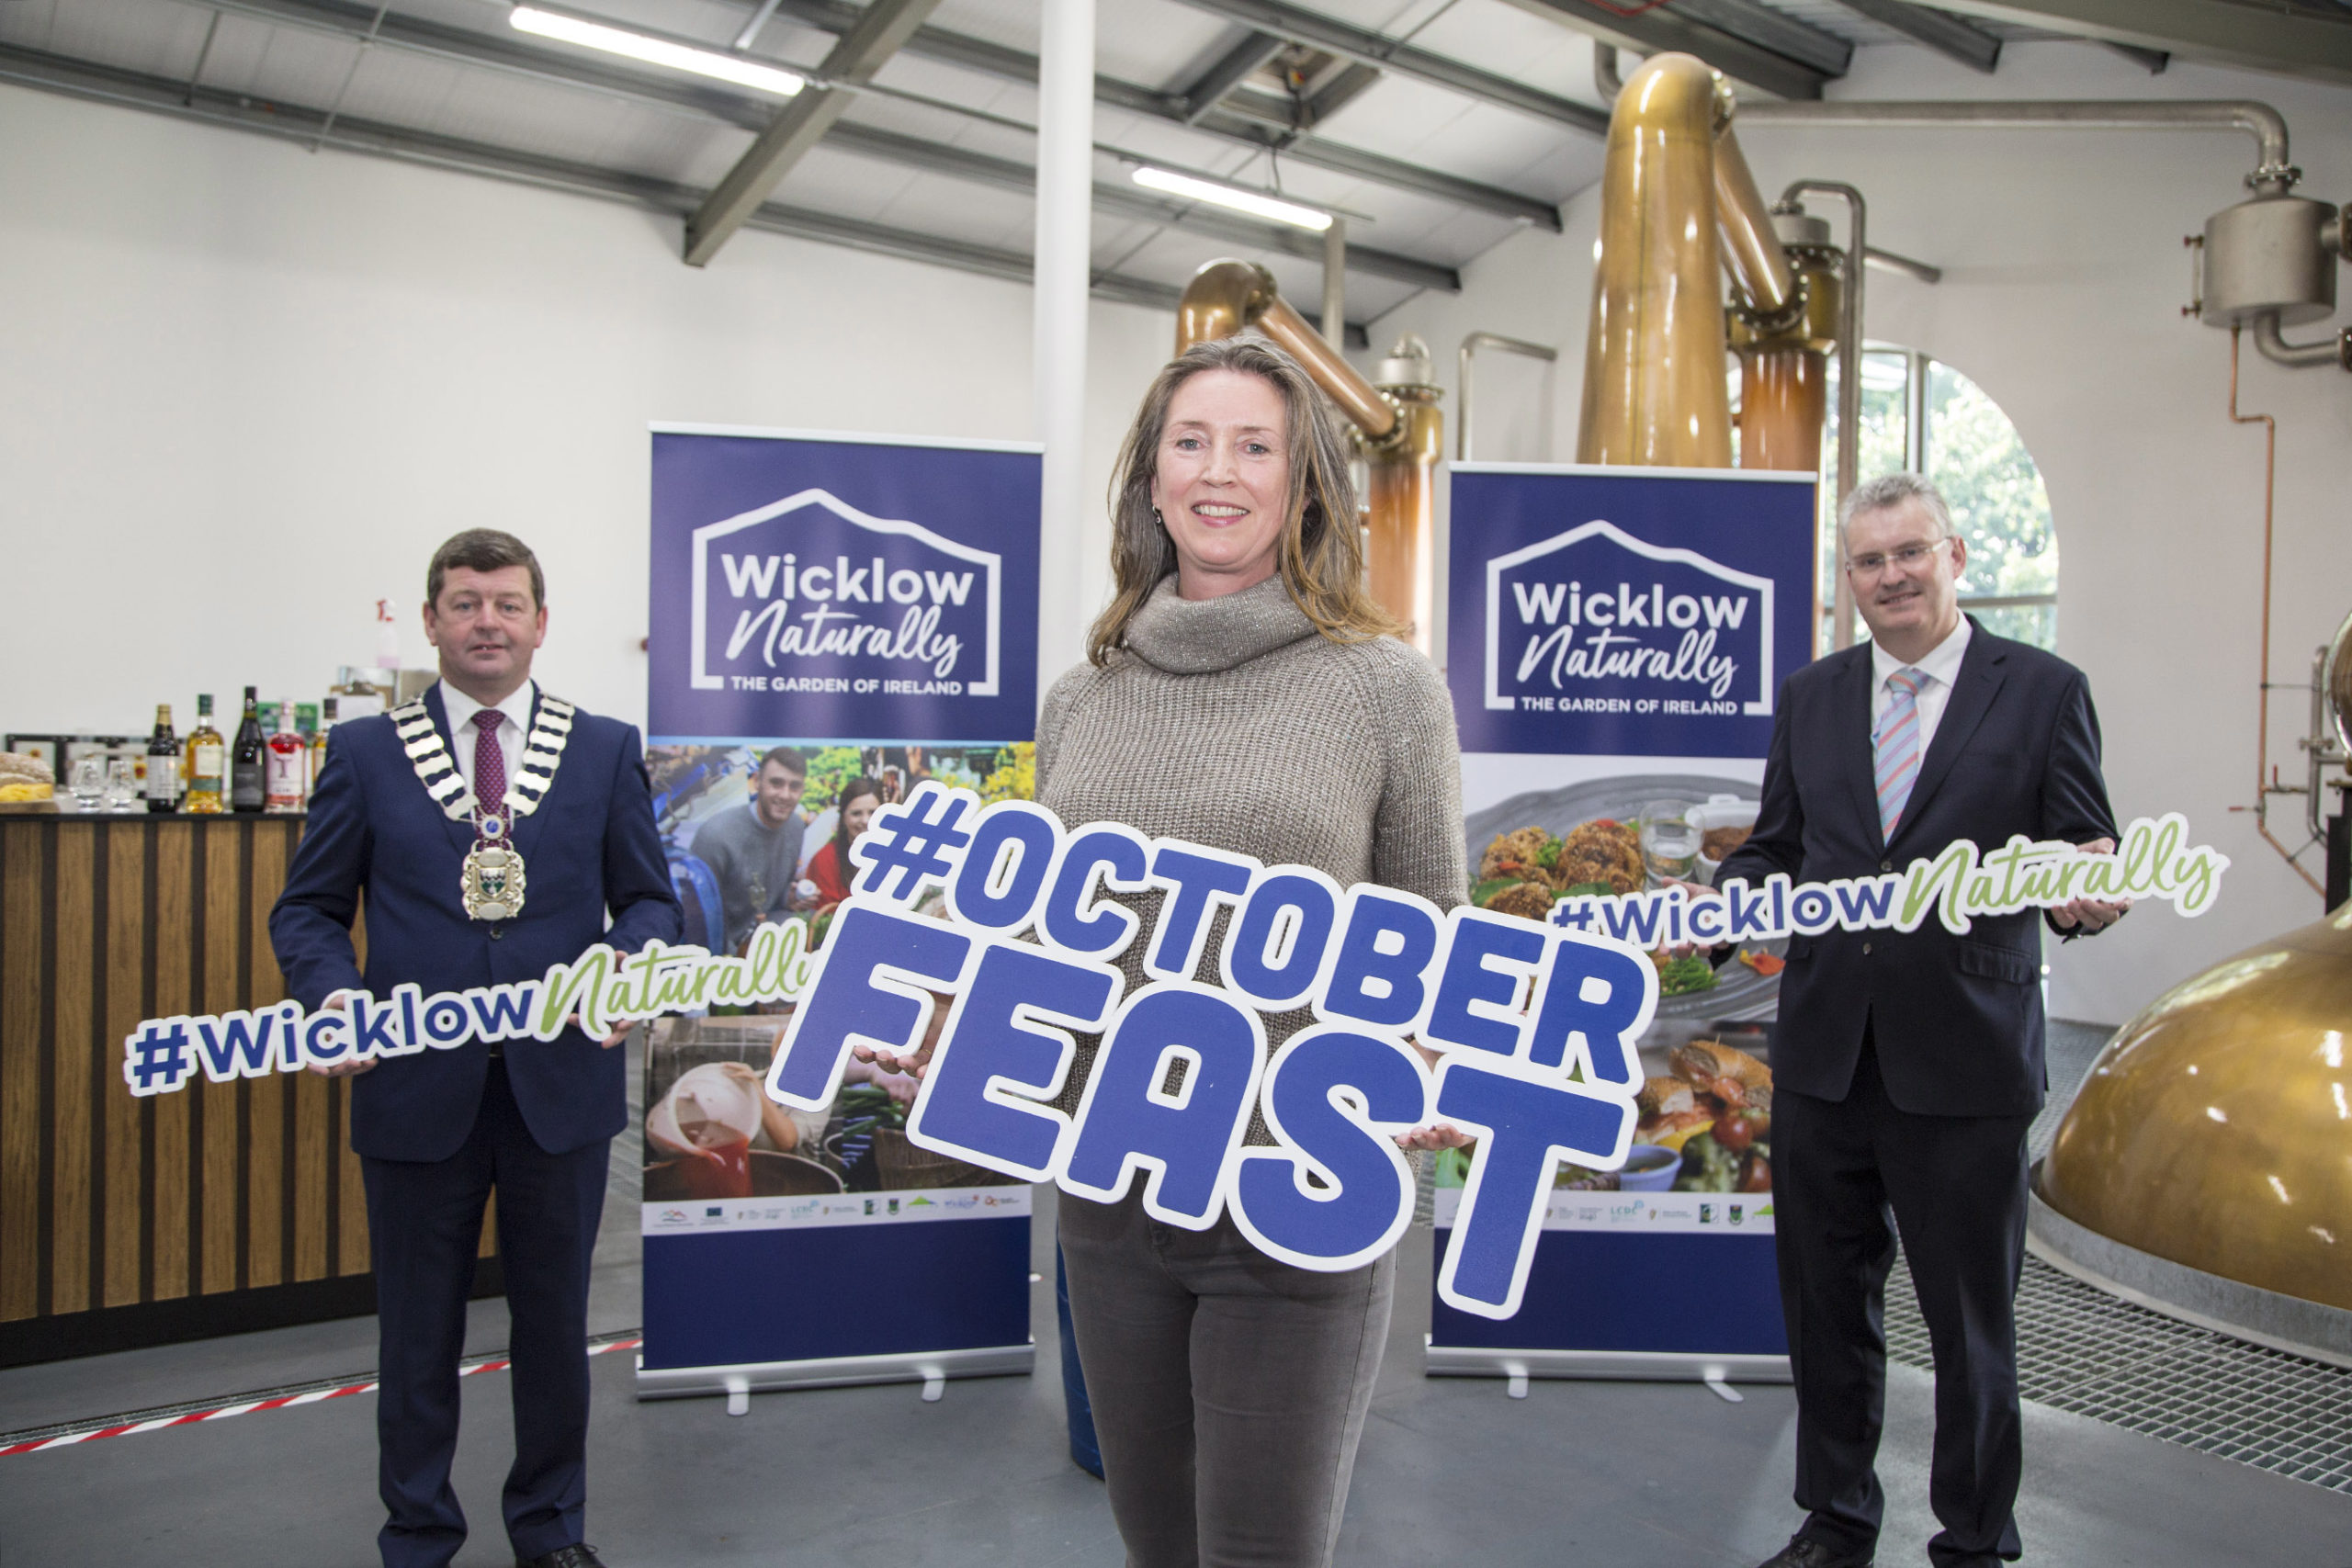 Wicklow Naturally's October Feast is launched by Wicklow Naturally at Powerscourt Distillery